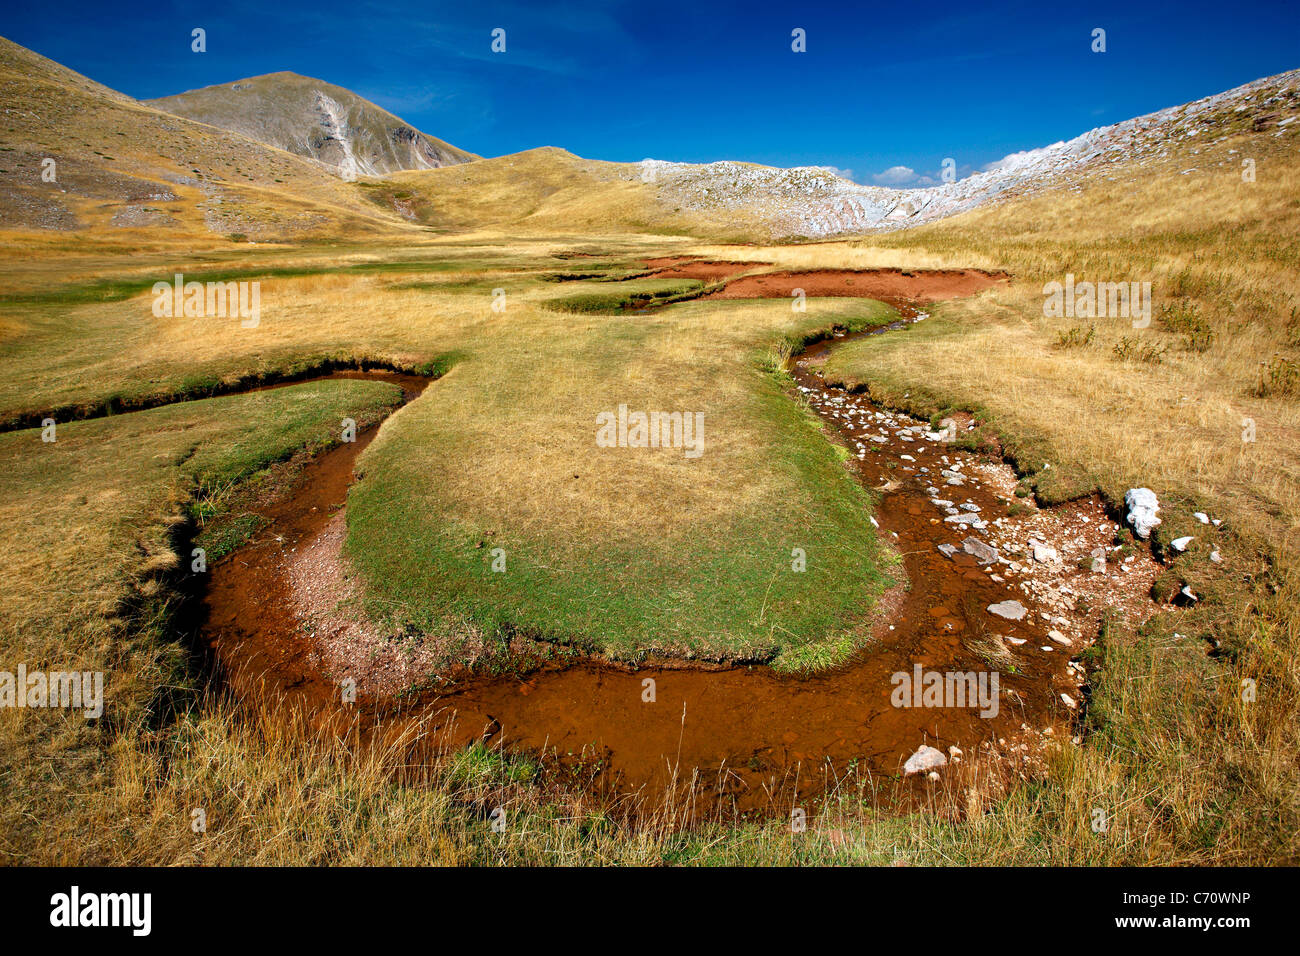 Verliga, the sources of Acheloos (also know as 'Aspropotamos') region, Pindos mountain range, Trikala, Thessaly, - Stock Image